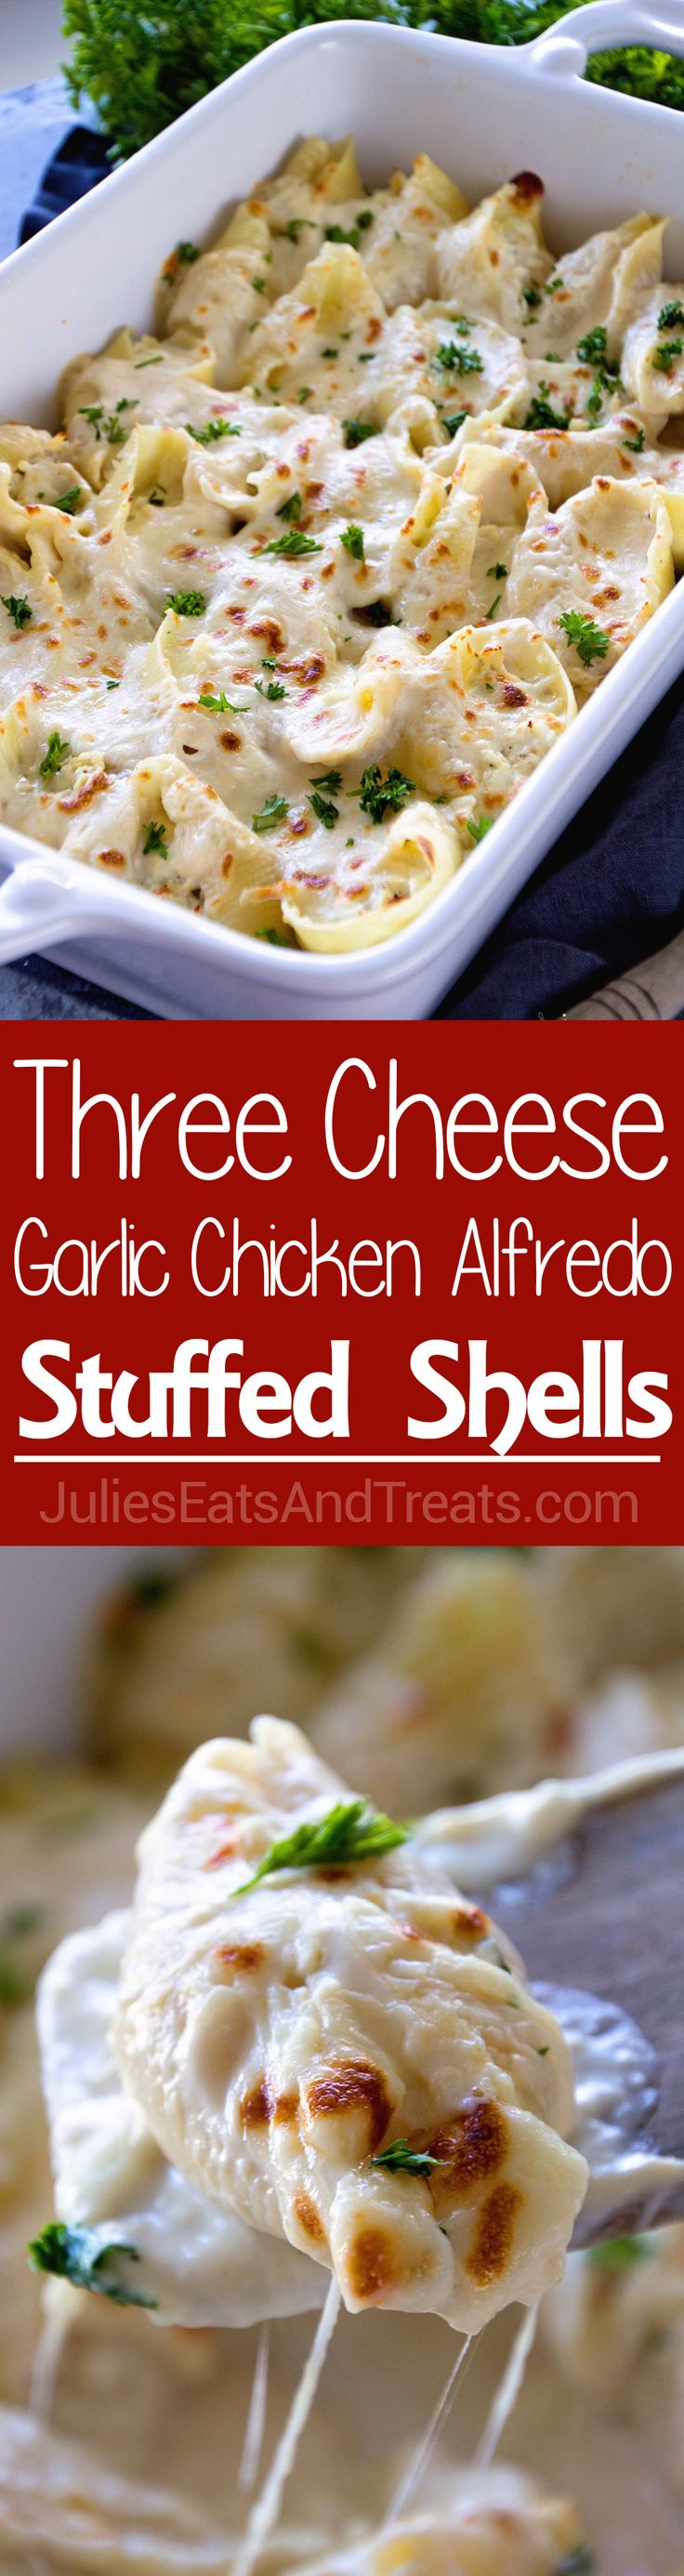 Chicken Alfredo Stuffed Shells Recipe ~ Jumbo Pasta Shells Stuffed with Three Kinds of Cheese and Topped with Creamy Alfredo Sauce! Perfect for a Quick Easy Dinner or Lunch!